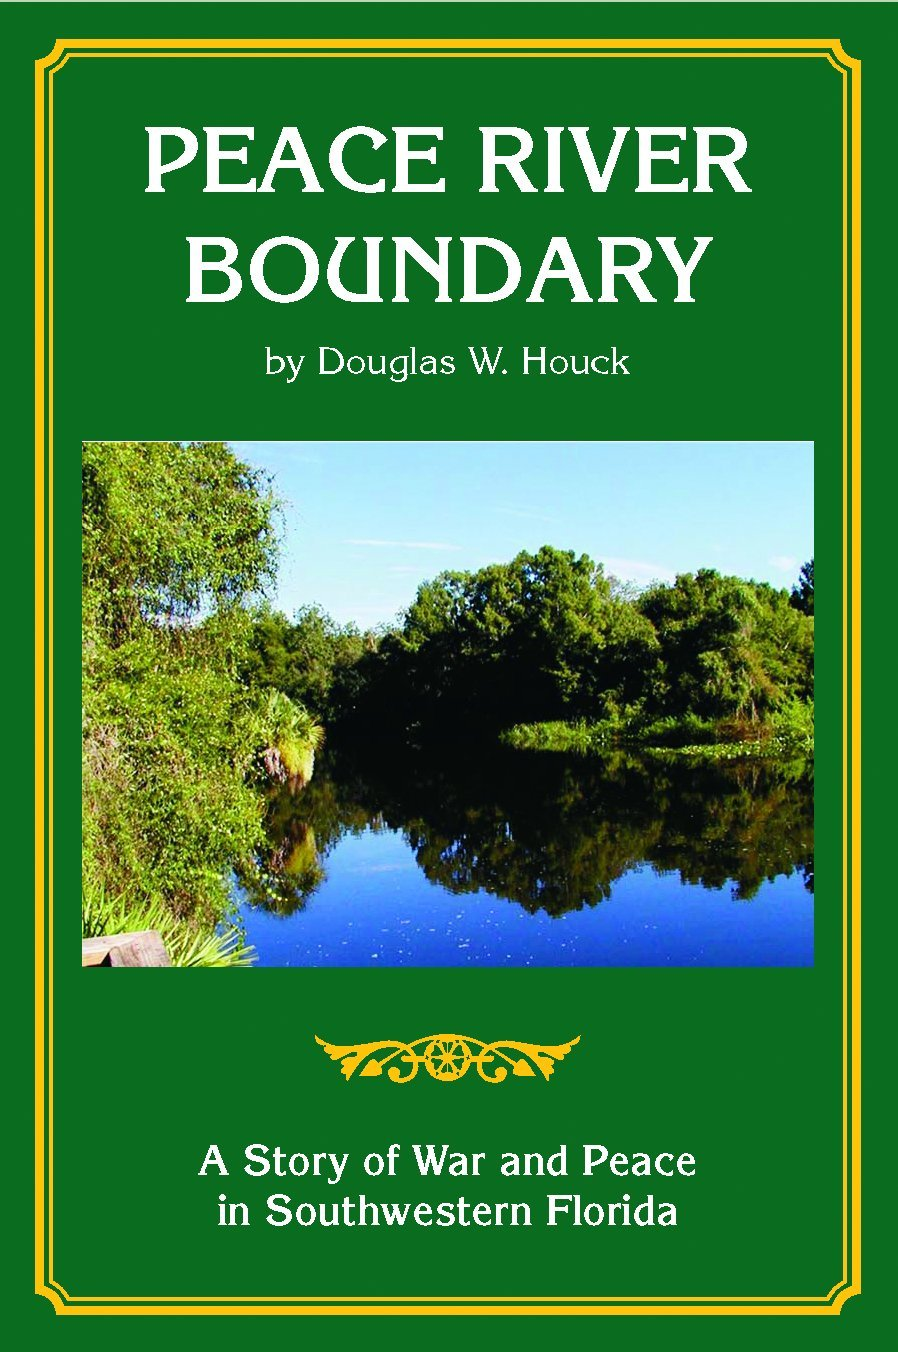 Download Peace River Boundary: A Story of War and Peace in Southwestern Florida (Trade Books) pdf